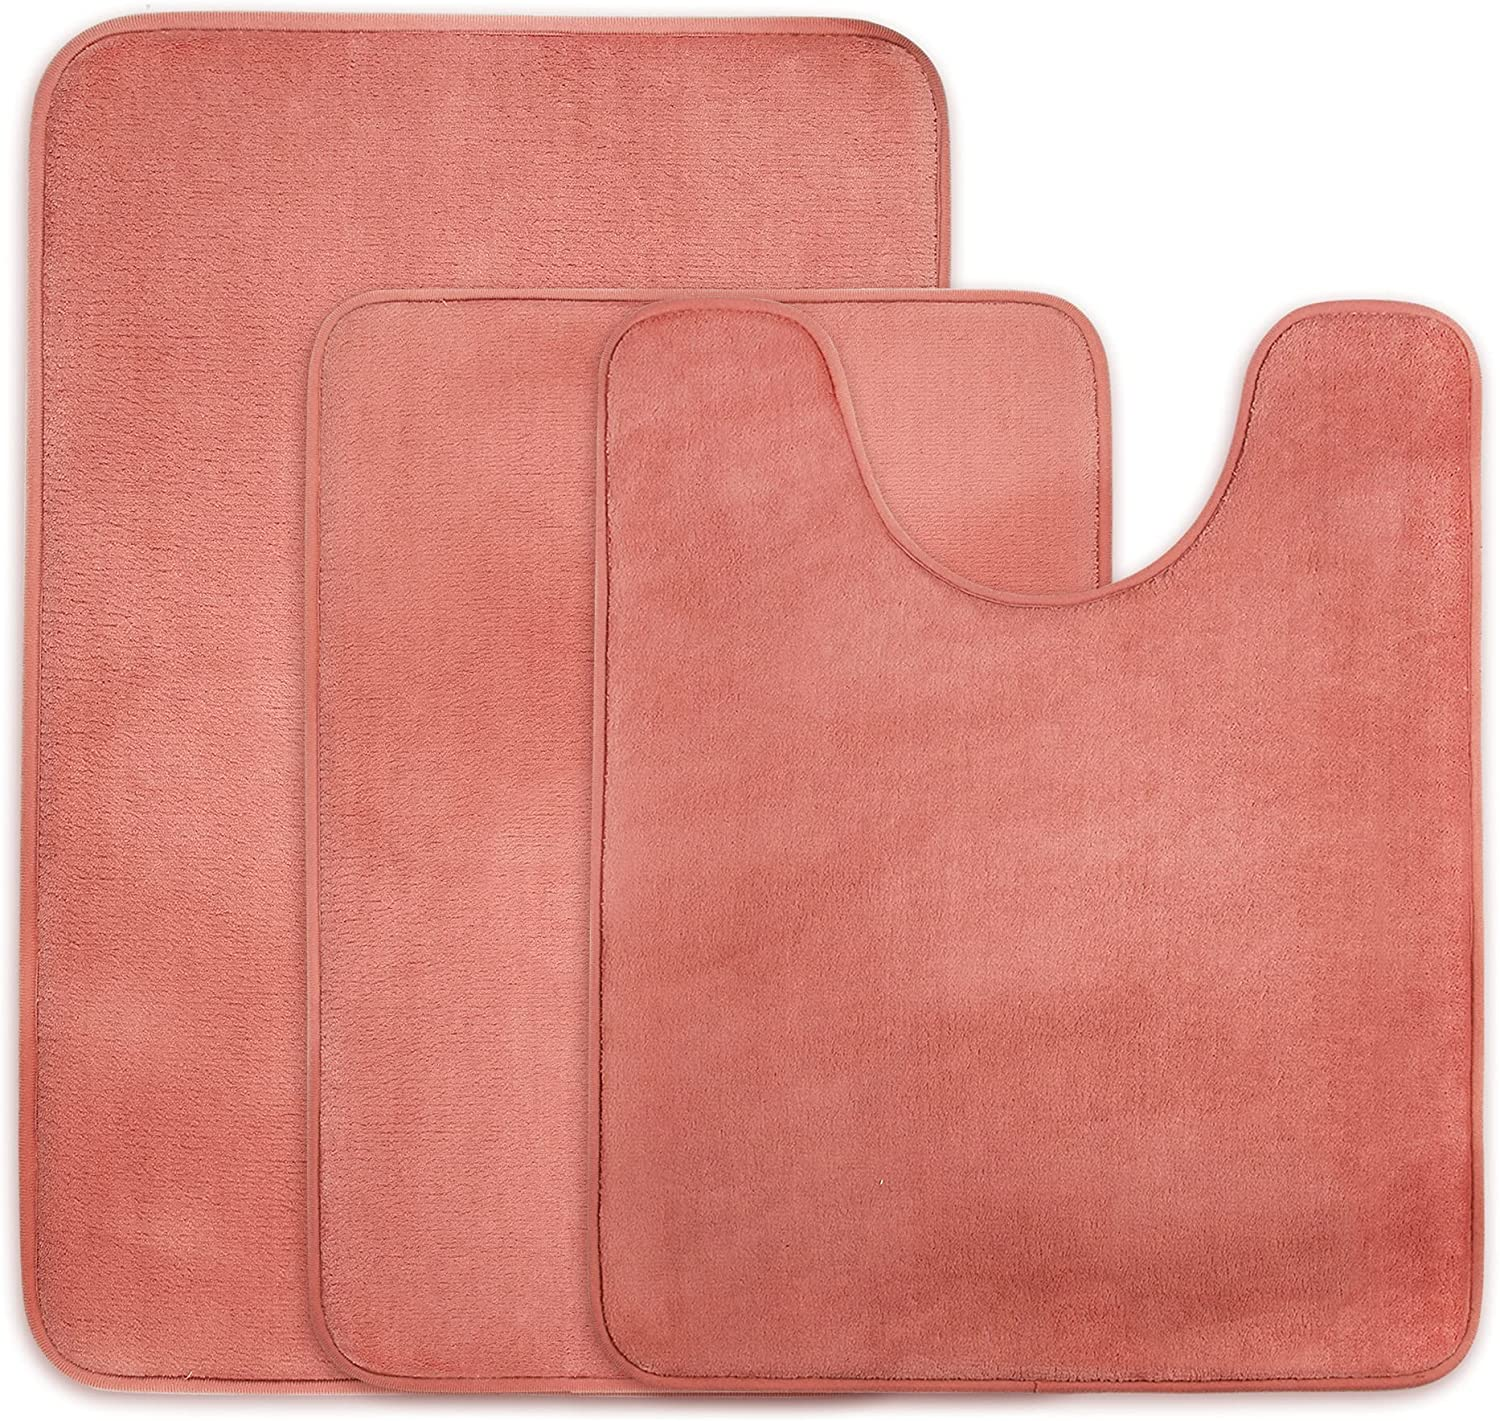 Memory Quality inspection Foam Bath Mat Toilet Set of C Pink Coral Ranking TOP5 Deep 3 Piece -